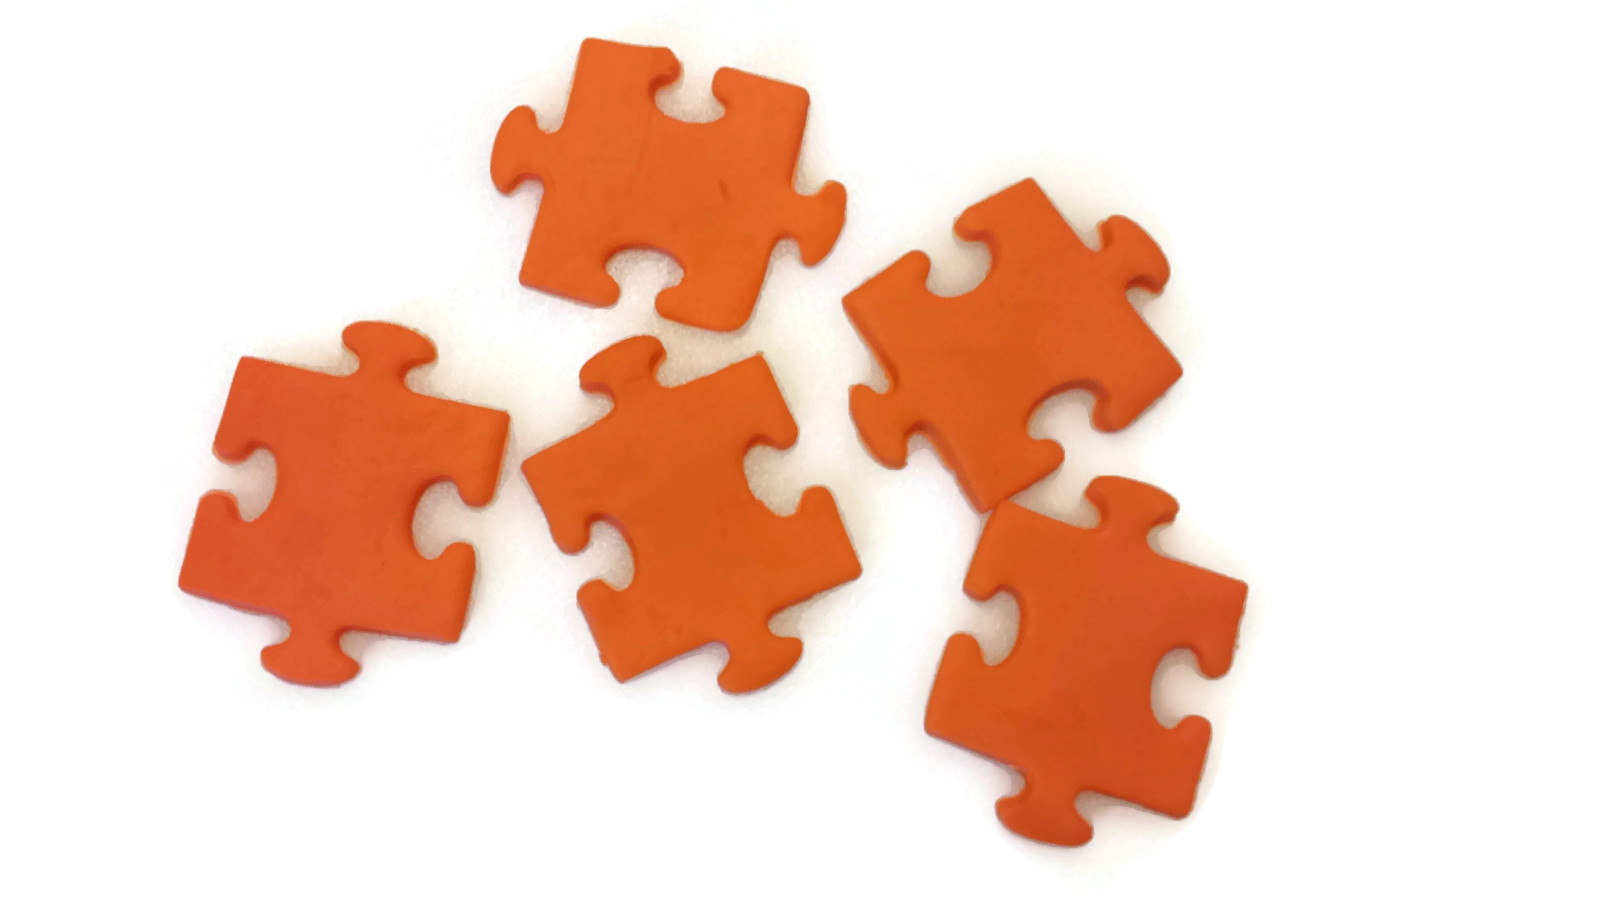 Primary image for 3D Printed Puzzle Piece Cookie Cutter